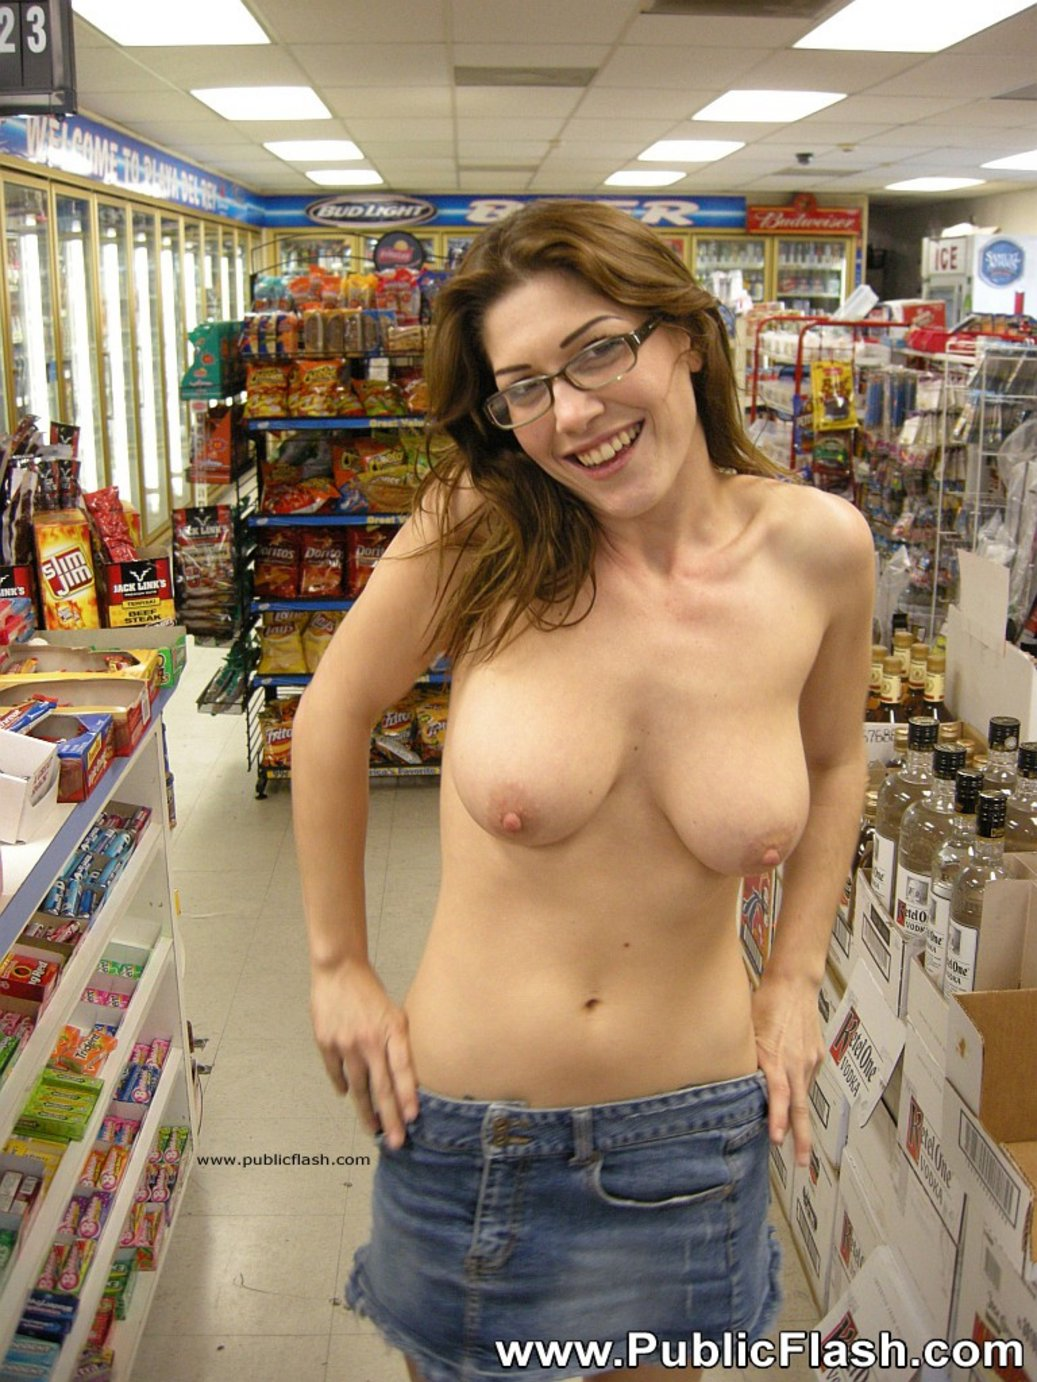 Owner of shop masturbates after watching client undress 9